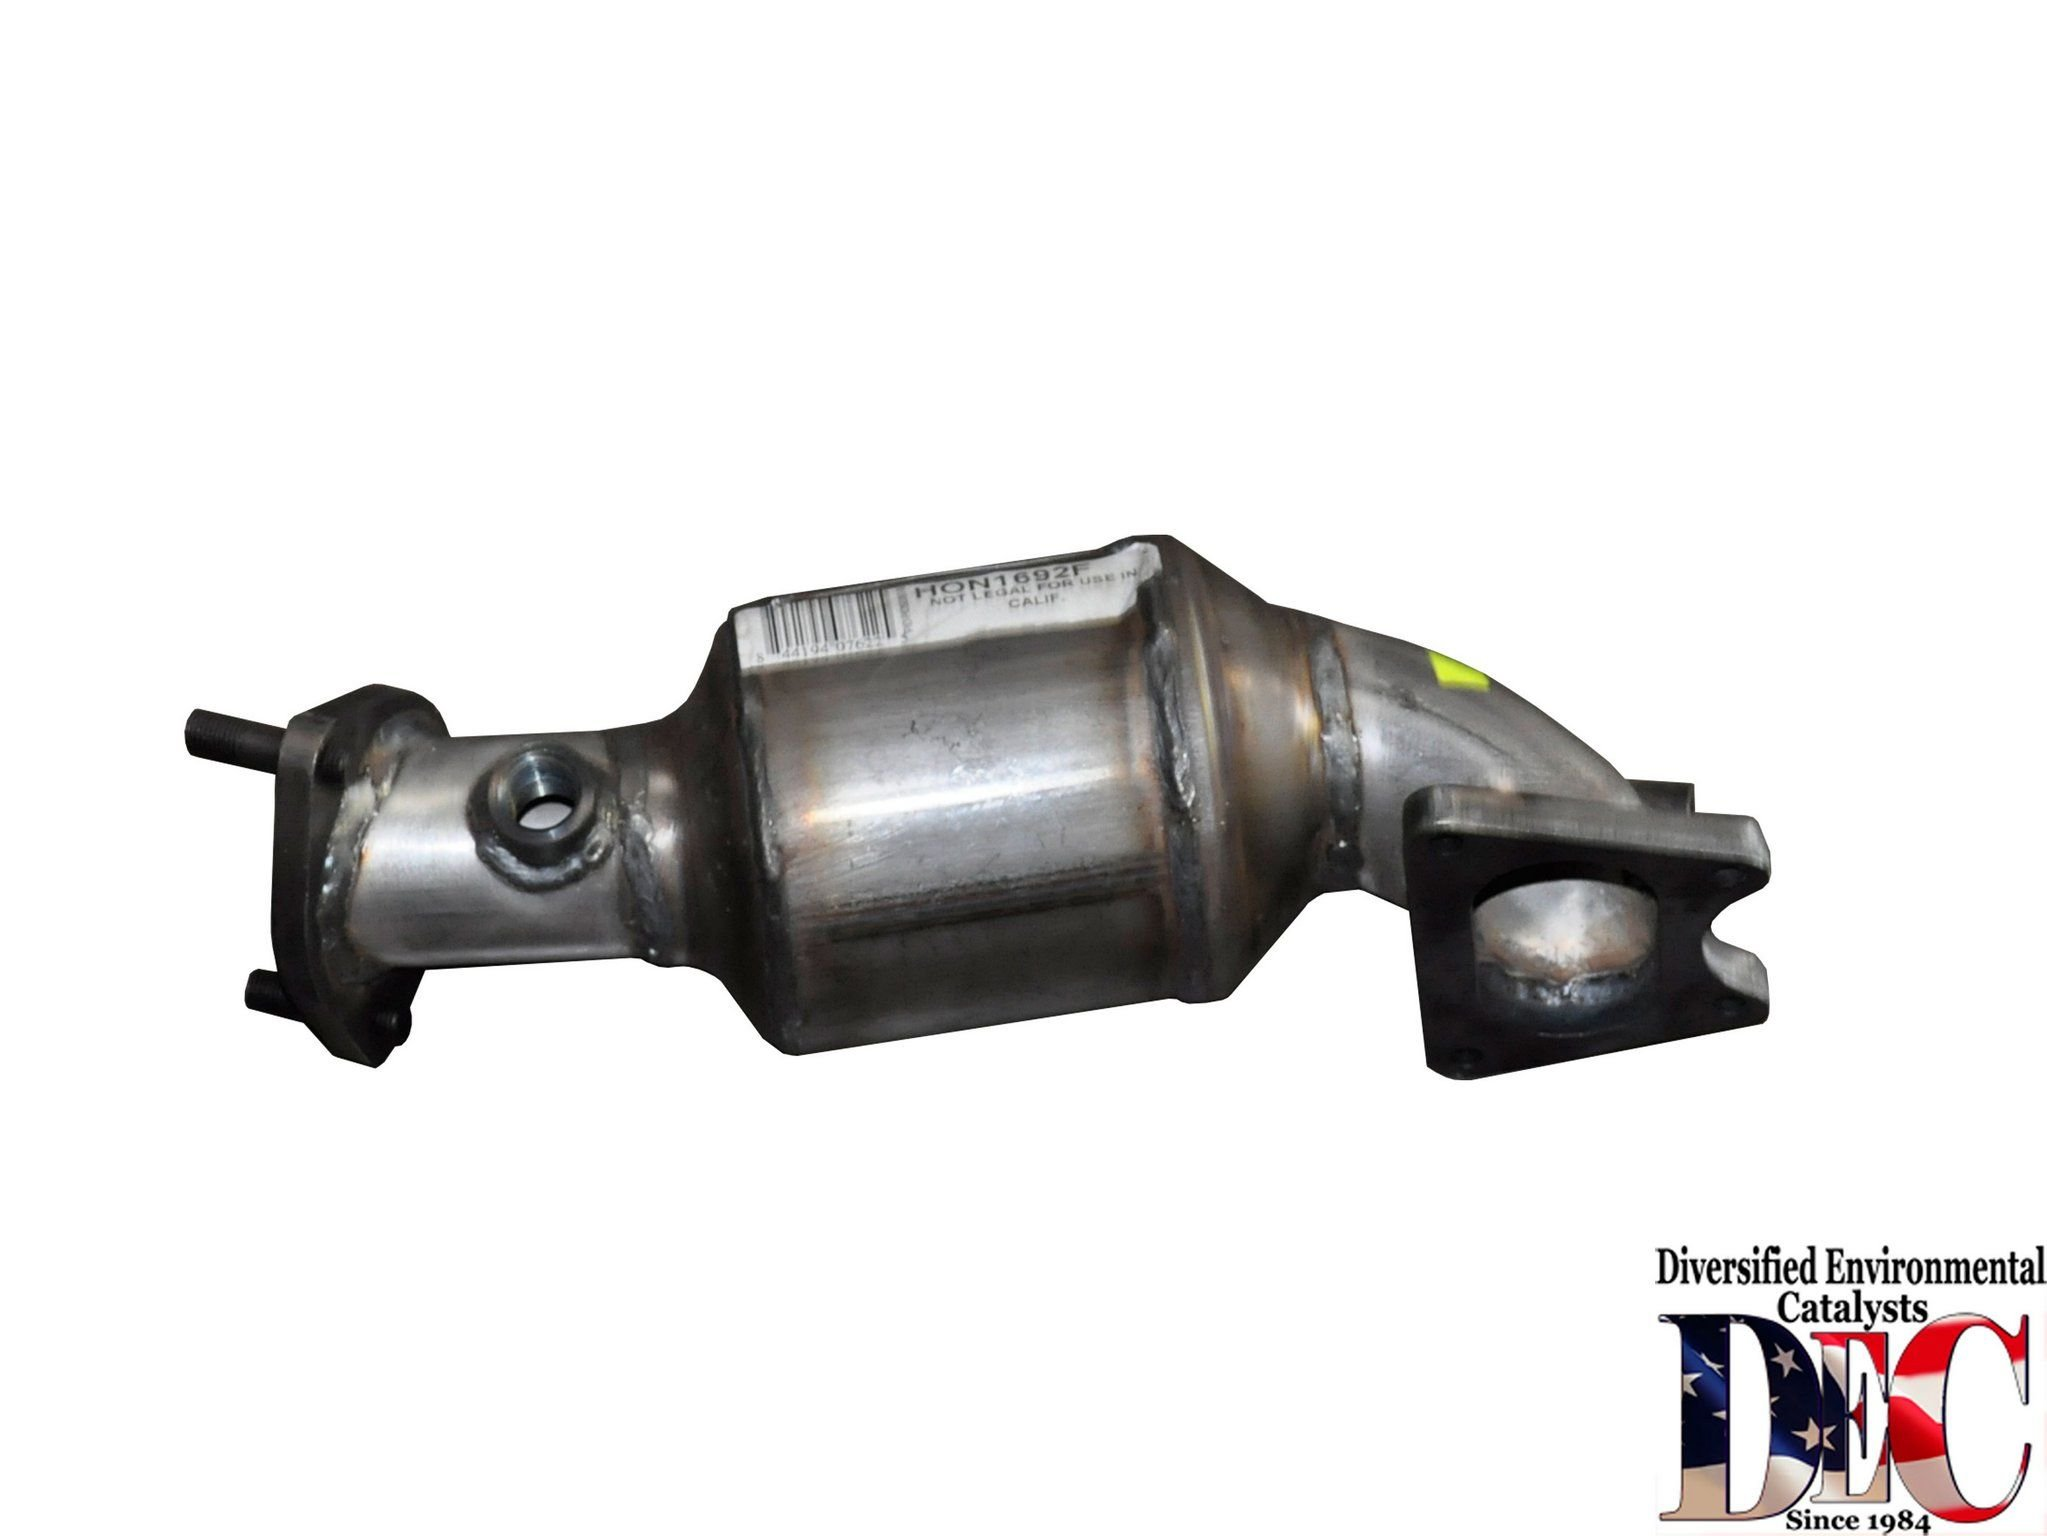 2008 Acura TL Catalytic Converter - Front Left 6 Cyl 3.5L (DEC HON1692F)  (Bank #2) E.P.A. Compliant Catalytic Converter .